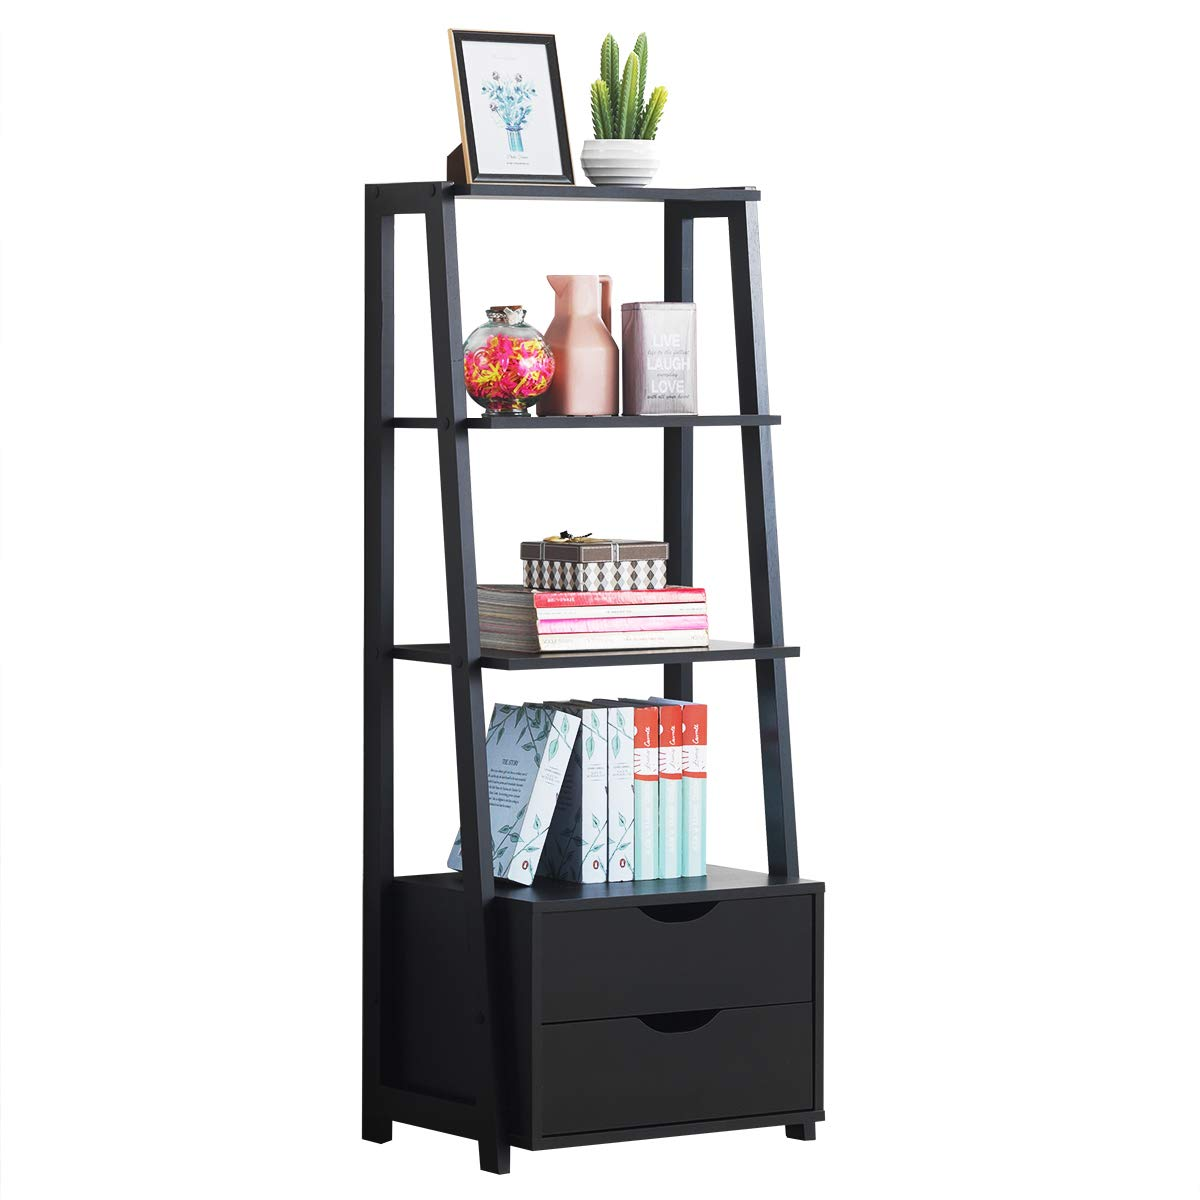 Tangkula Ladder Shelf Bookcase, Free Standing 4-Tier Bookshelf with 2 Storage Drawers, Modern Storage Display Shelving with Drawers, Ideal for Bathroom Home Office (Black)